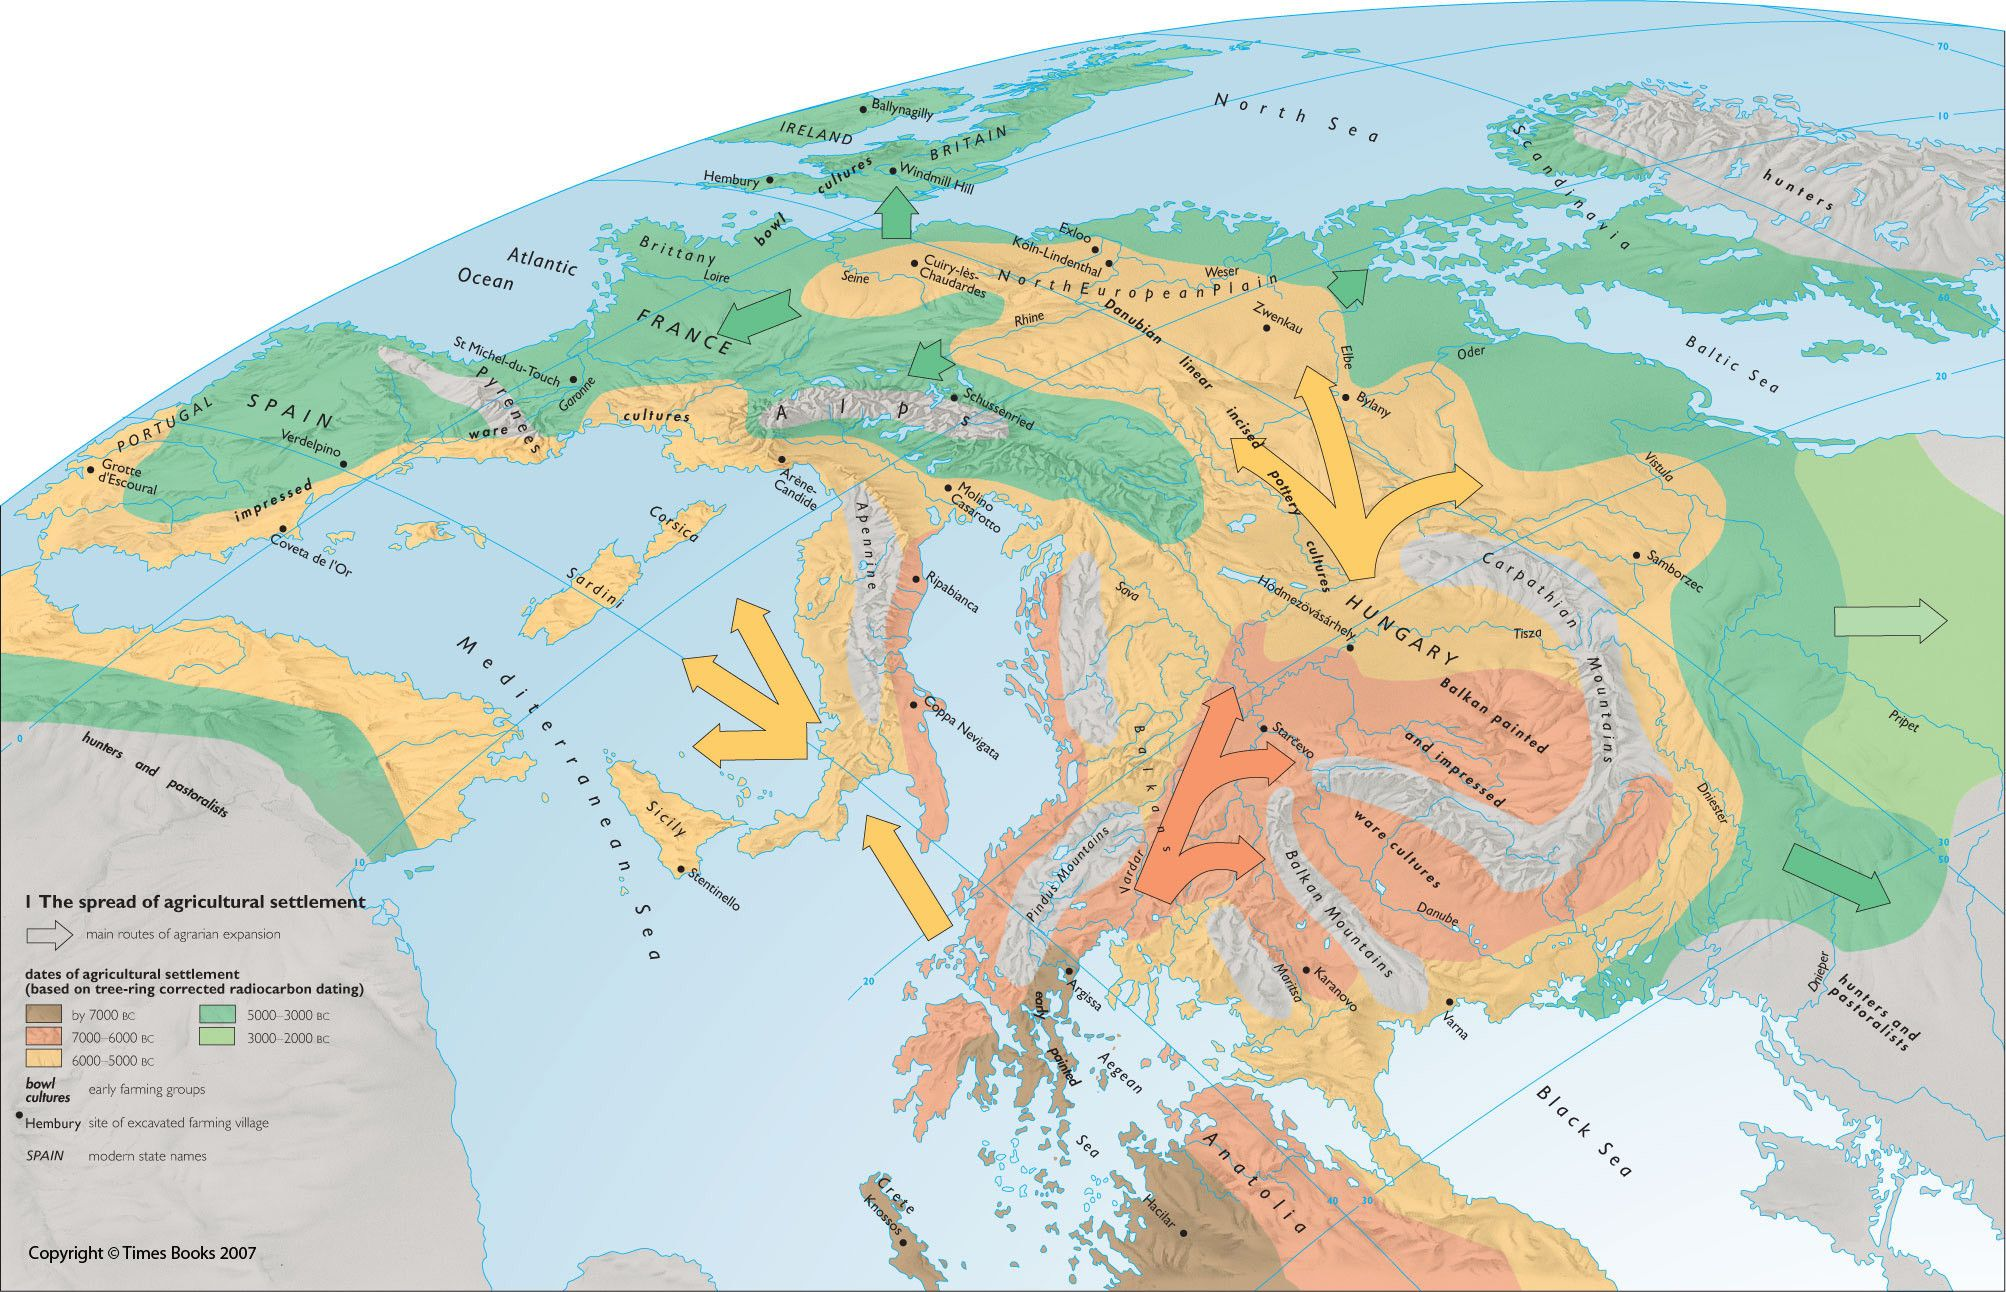 World Map 2000 Bc.Main Routes Of Agrarian Expansion Into Europe 7000 Bc To 2000 Bc